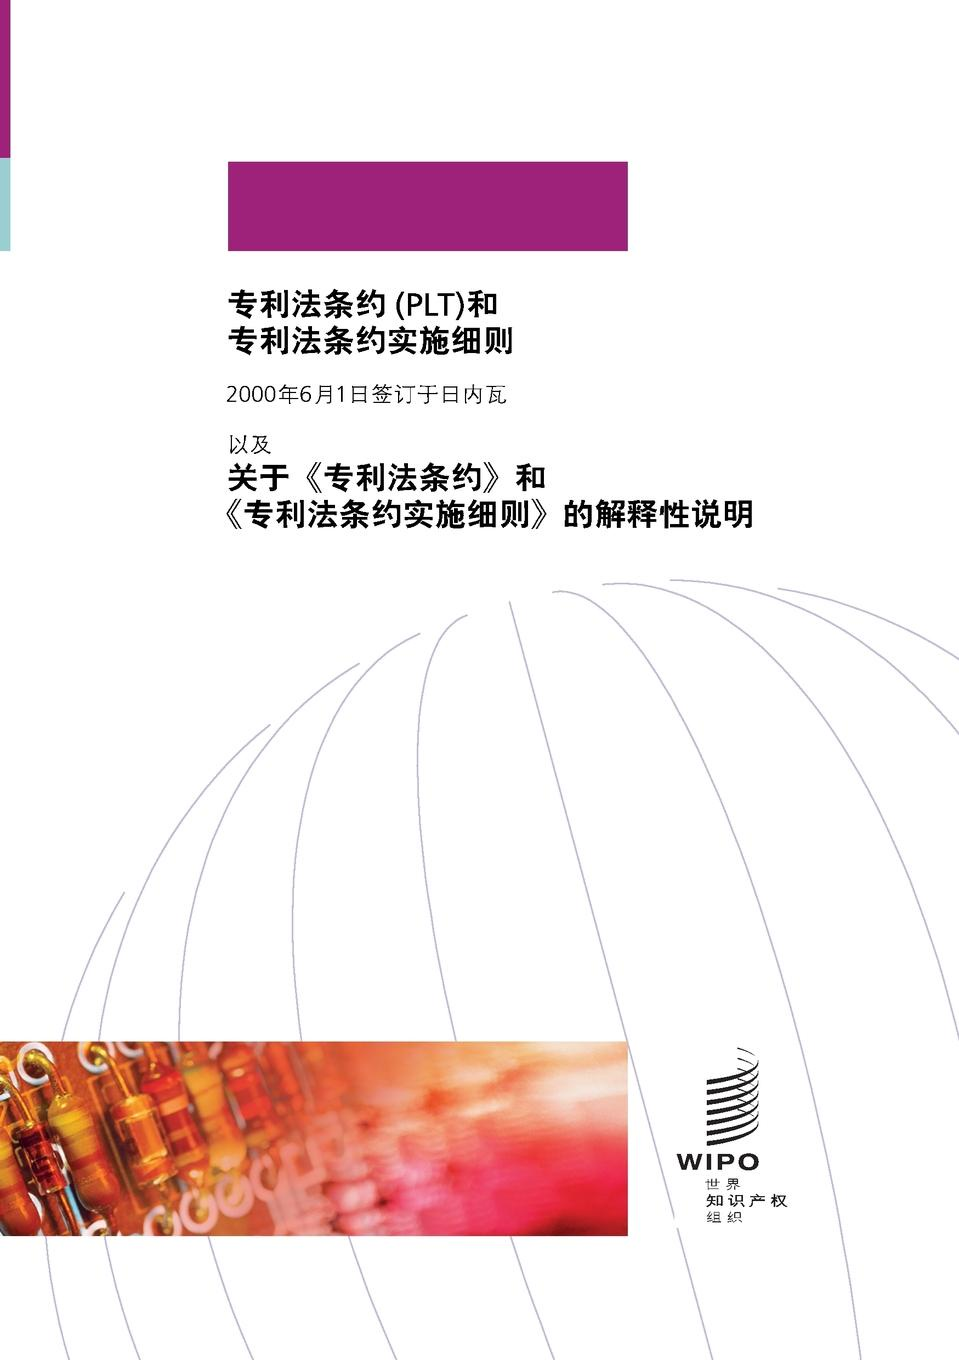 Patent Law Treaty (PLT) (Chinese edition) plt медицина